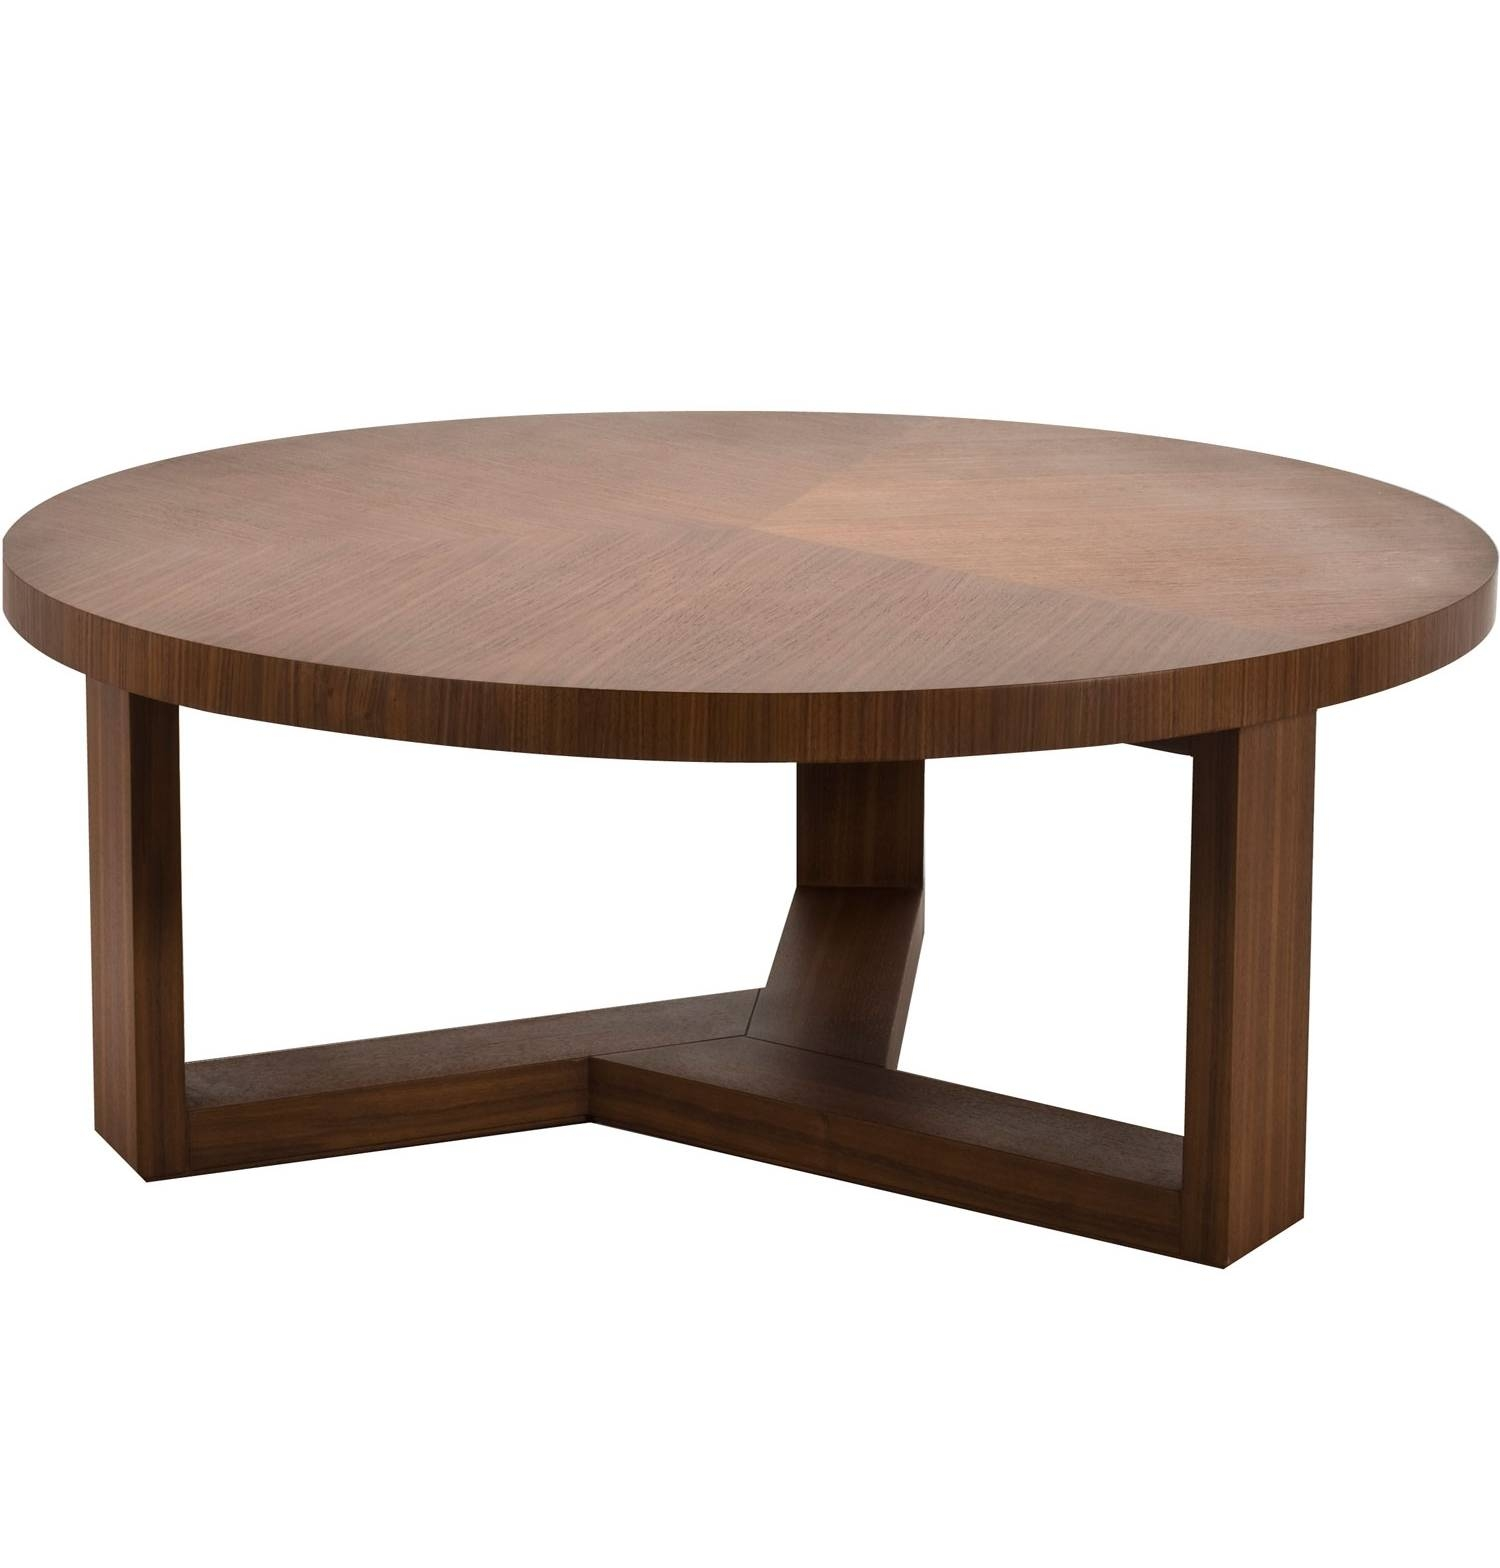 Coffee Table : Round Timber Coffee Table Round Coffee Table Simple regarding Round Coffee Tables With Drawers (Image 4 of 30)